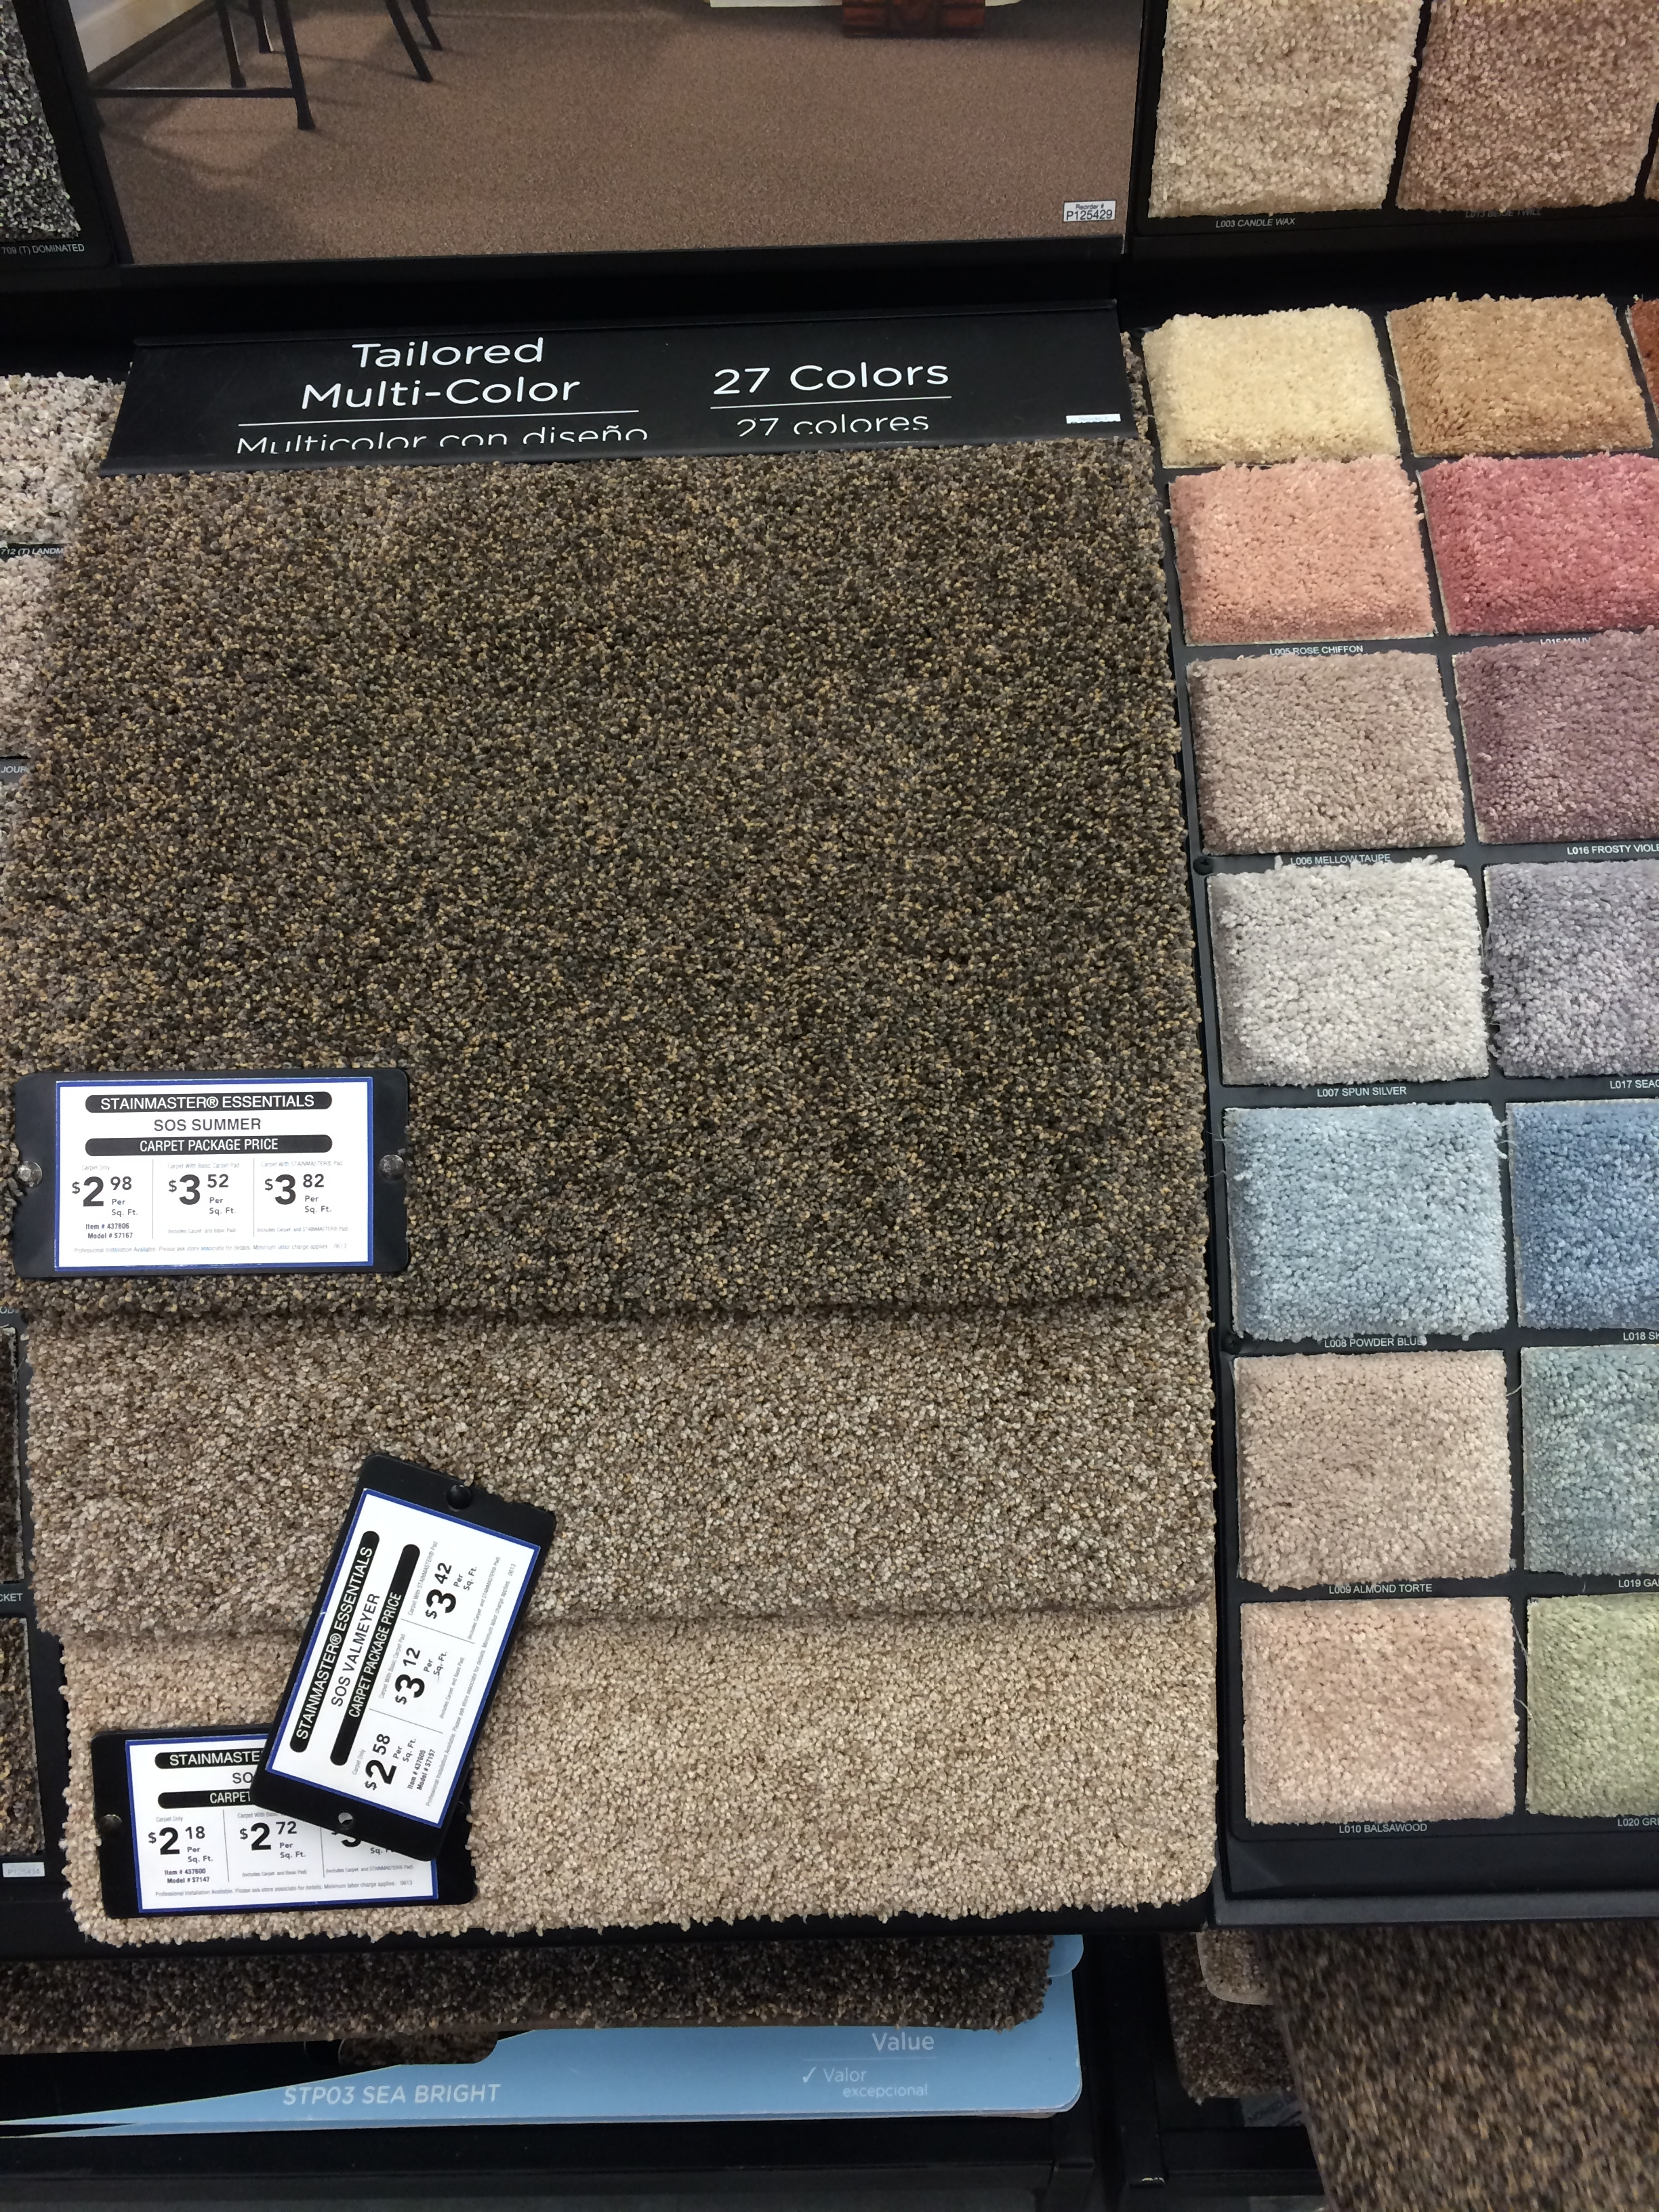 Stainmaster carpet   The Mace Place After talking with the flooring associate we decided to go with a Stainmaster  carpet